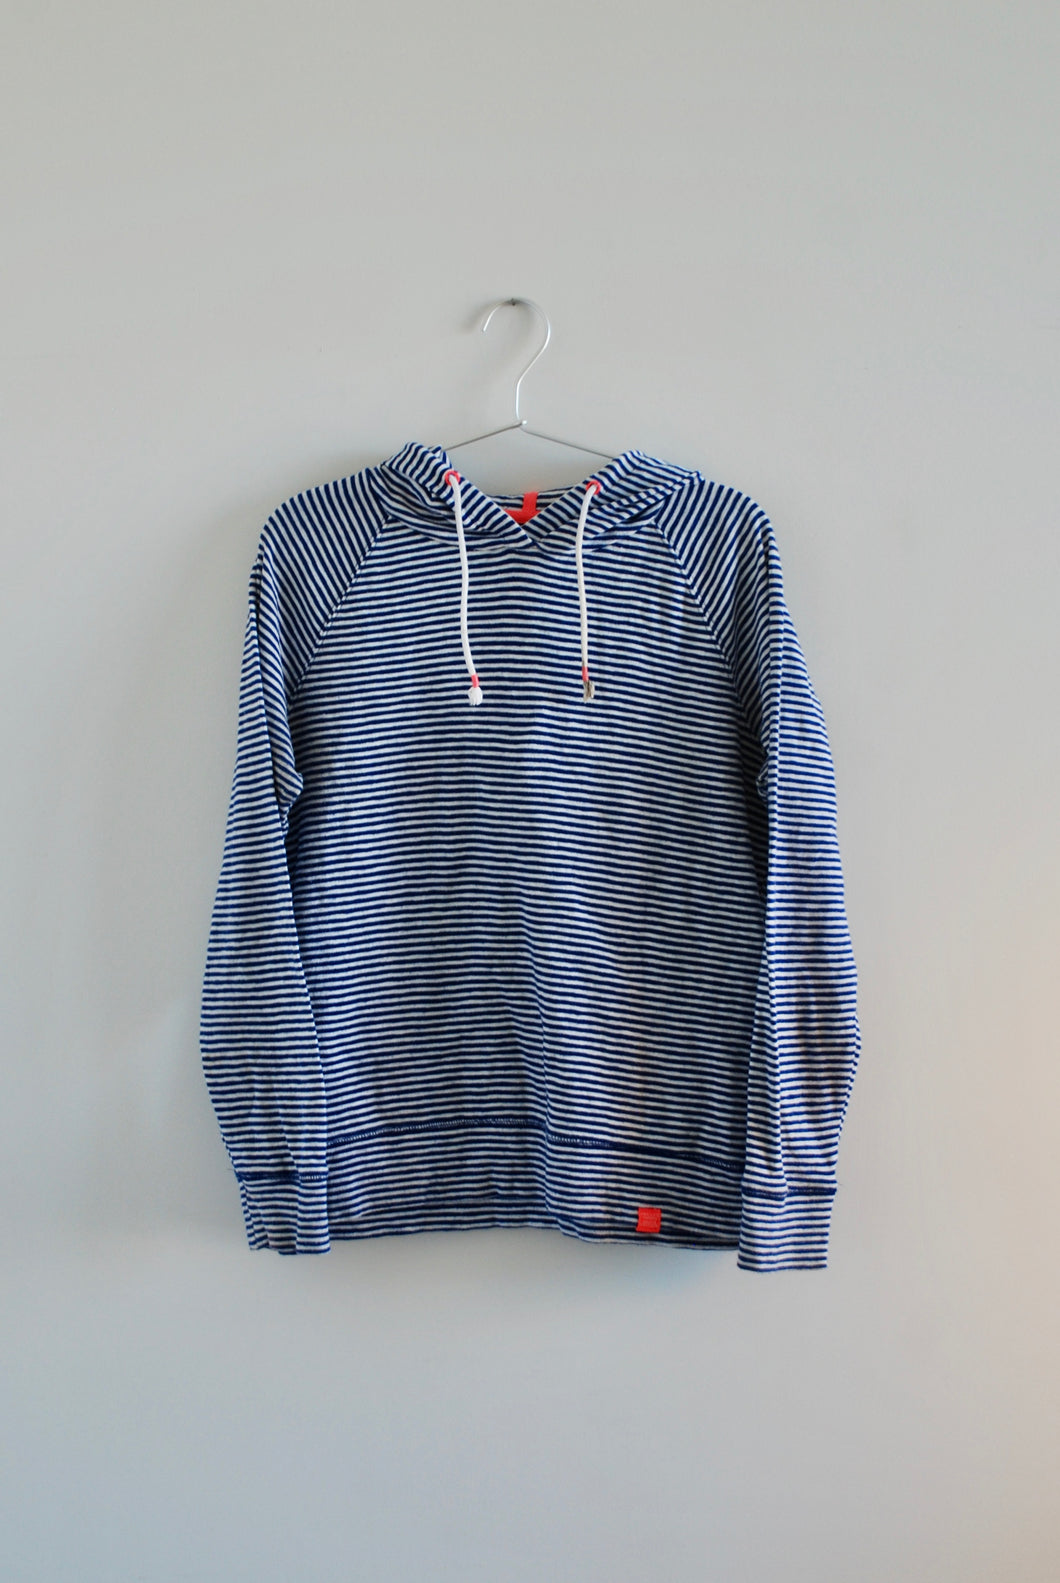 Joules Striped Hoodie (Women's 12)